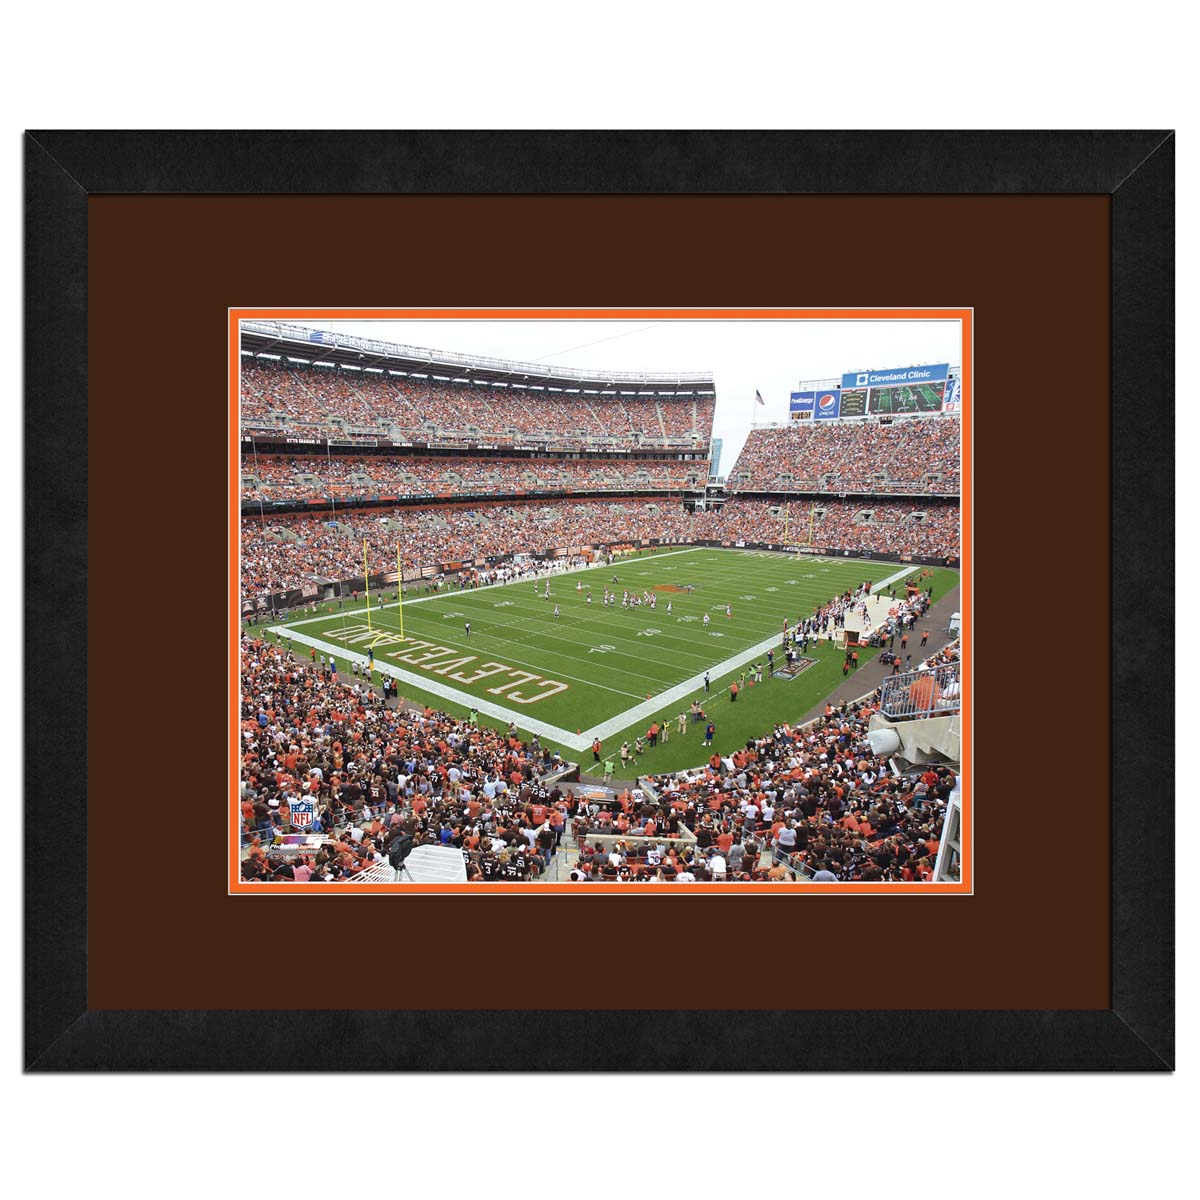 Cleveland Browns Stadium Browns High Resolution framed photography